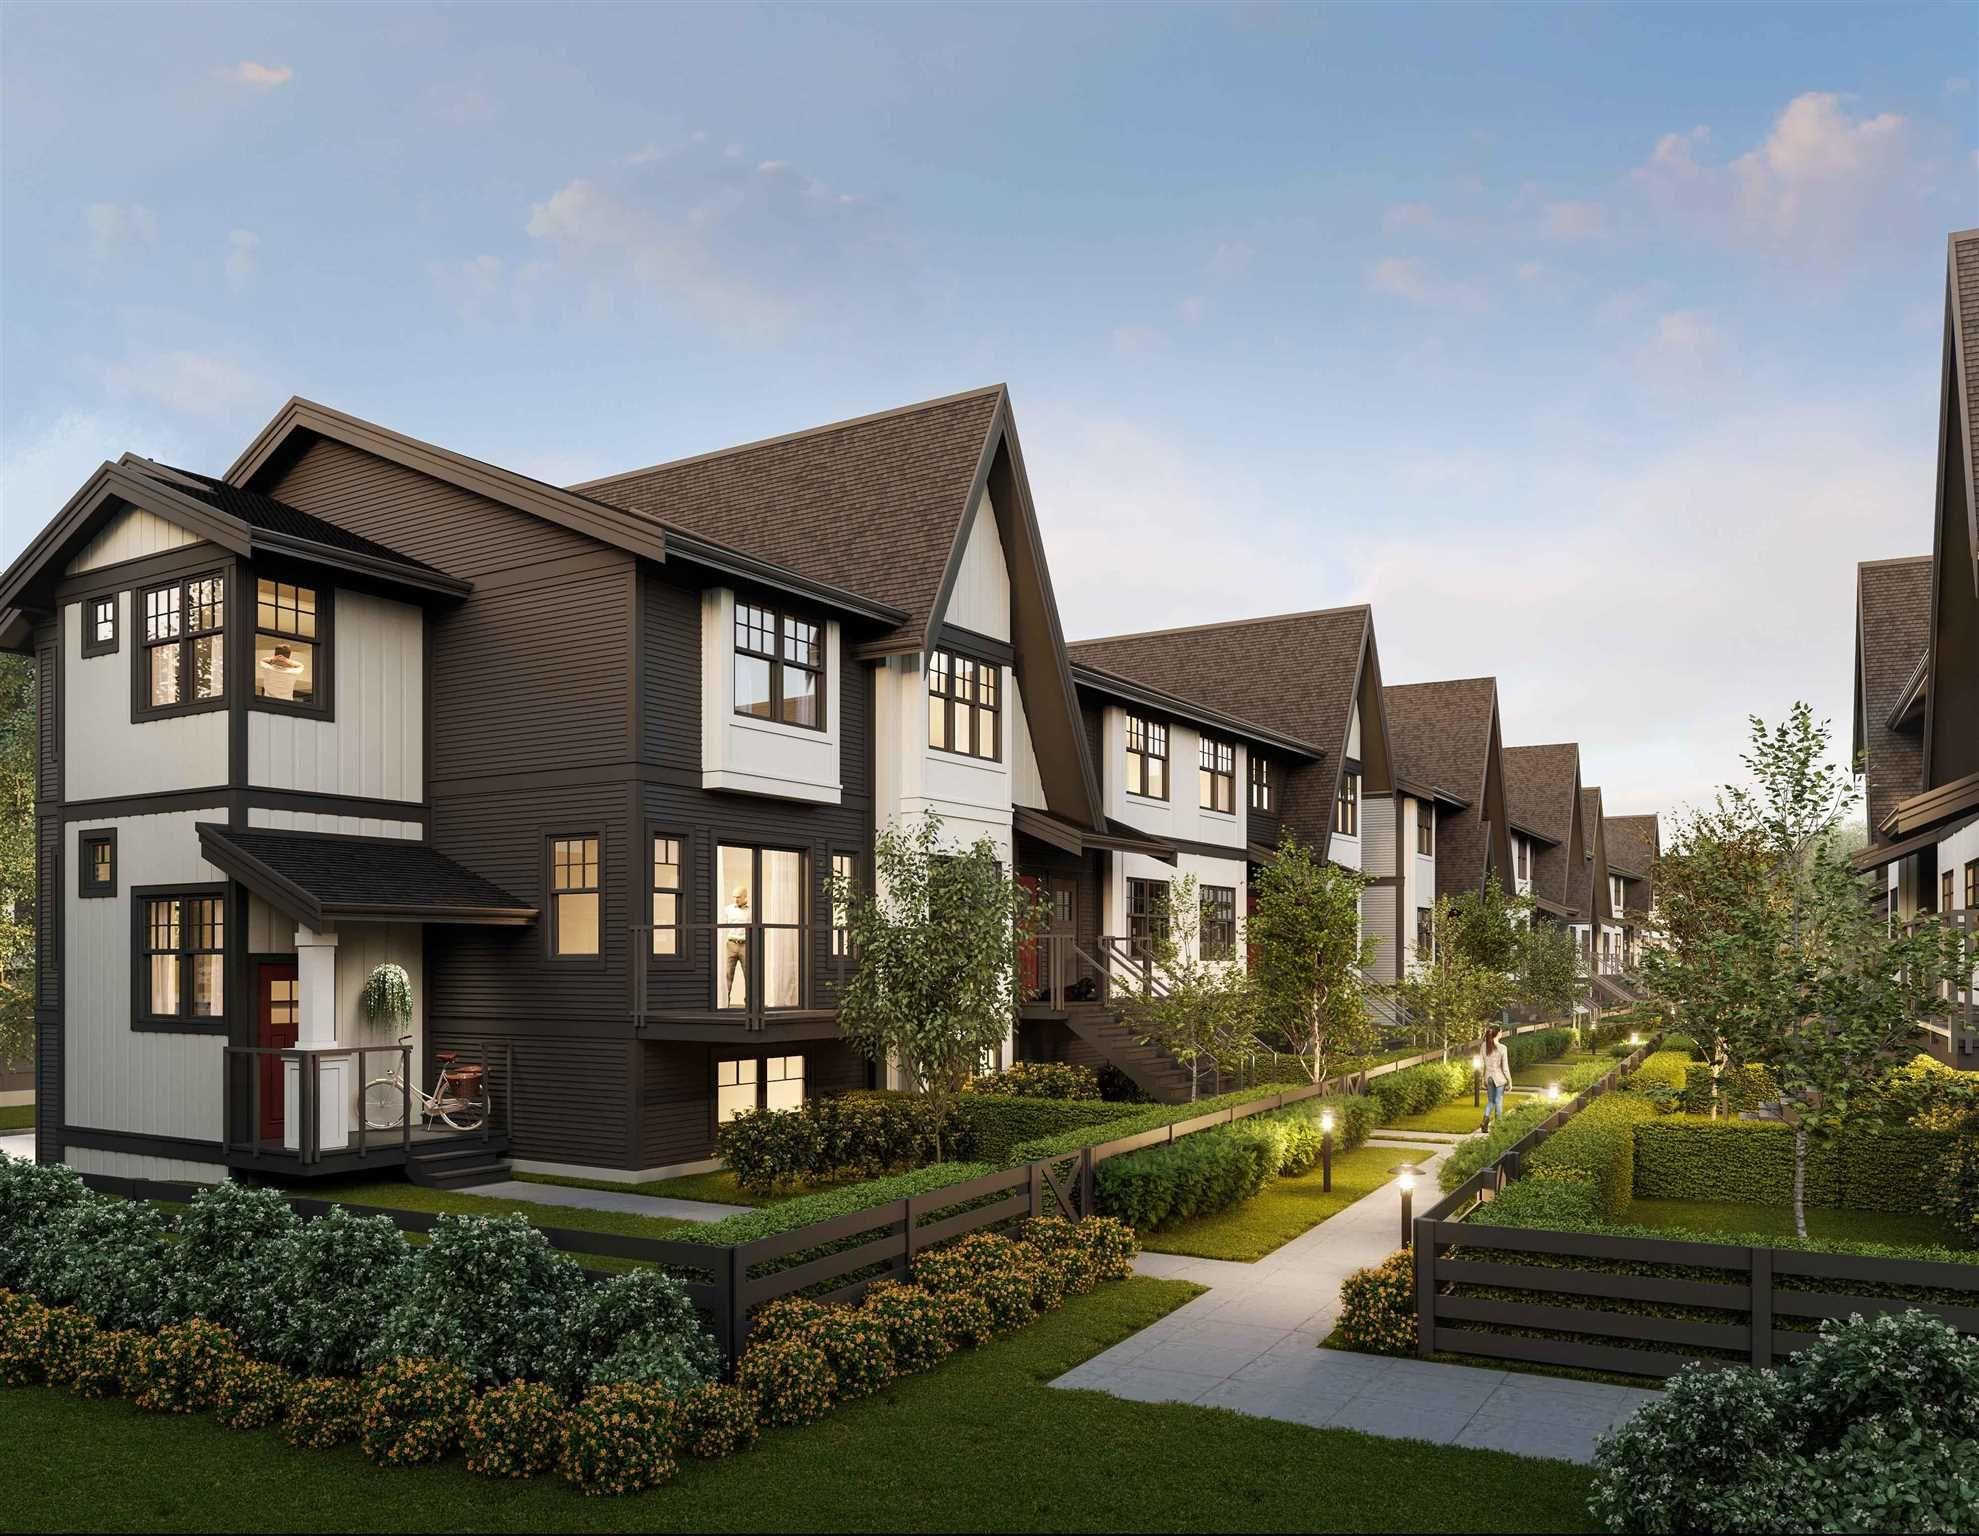 """Main Photo: 181 19451 SUTTON Avenue in Pitt Meadows: South Meadows Townhouse for sale in """"NATURE'S WALK"""" : MLS®# R2606067"""